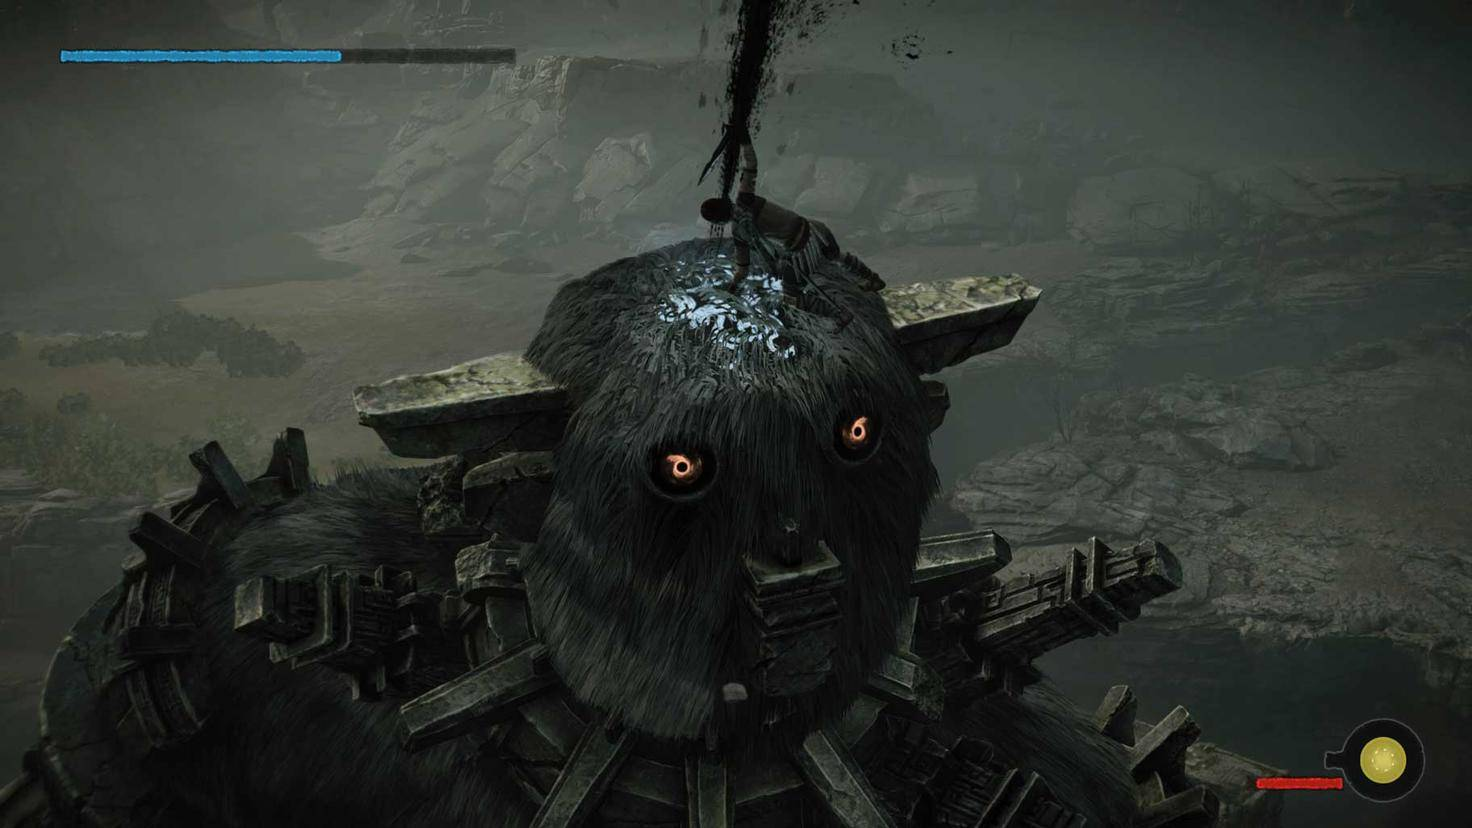 shadow-of-the-colossus-ps4-screenshot-03